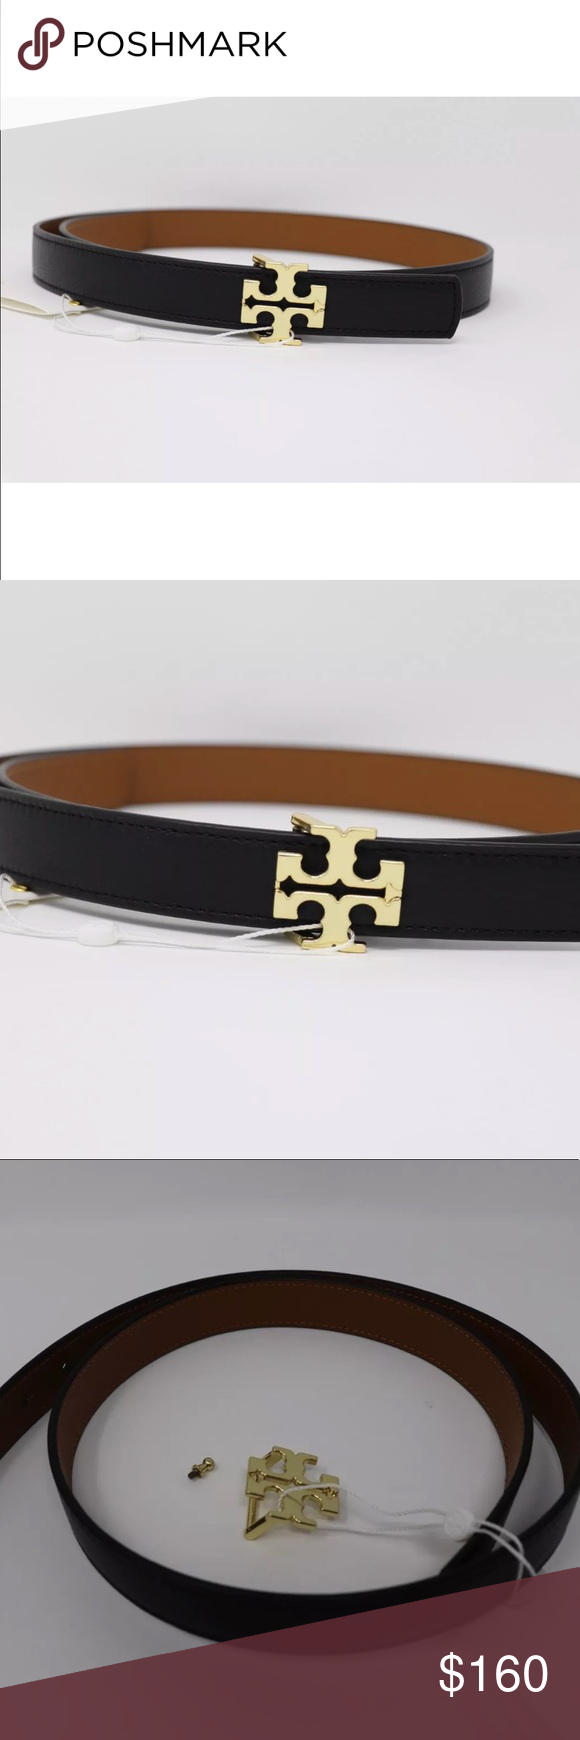 948b85a4b1c5 Reversible black brown Leather belt Reversible logo black  brown 1 inch  wide - 100% Authentic Color  Tiger s Eye Black  brown Tory Burch Other